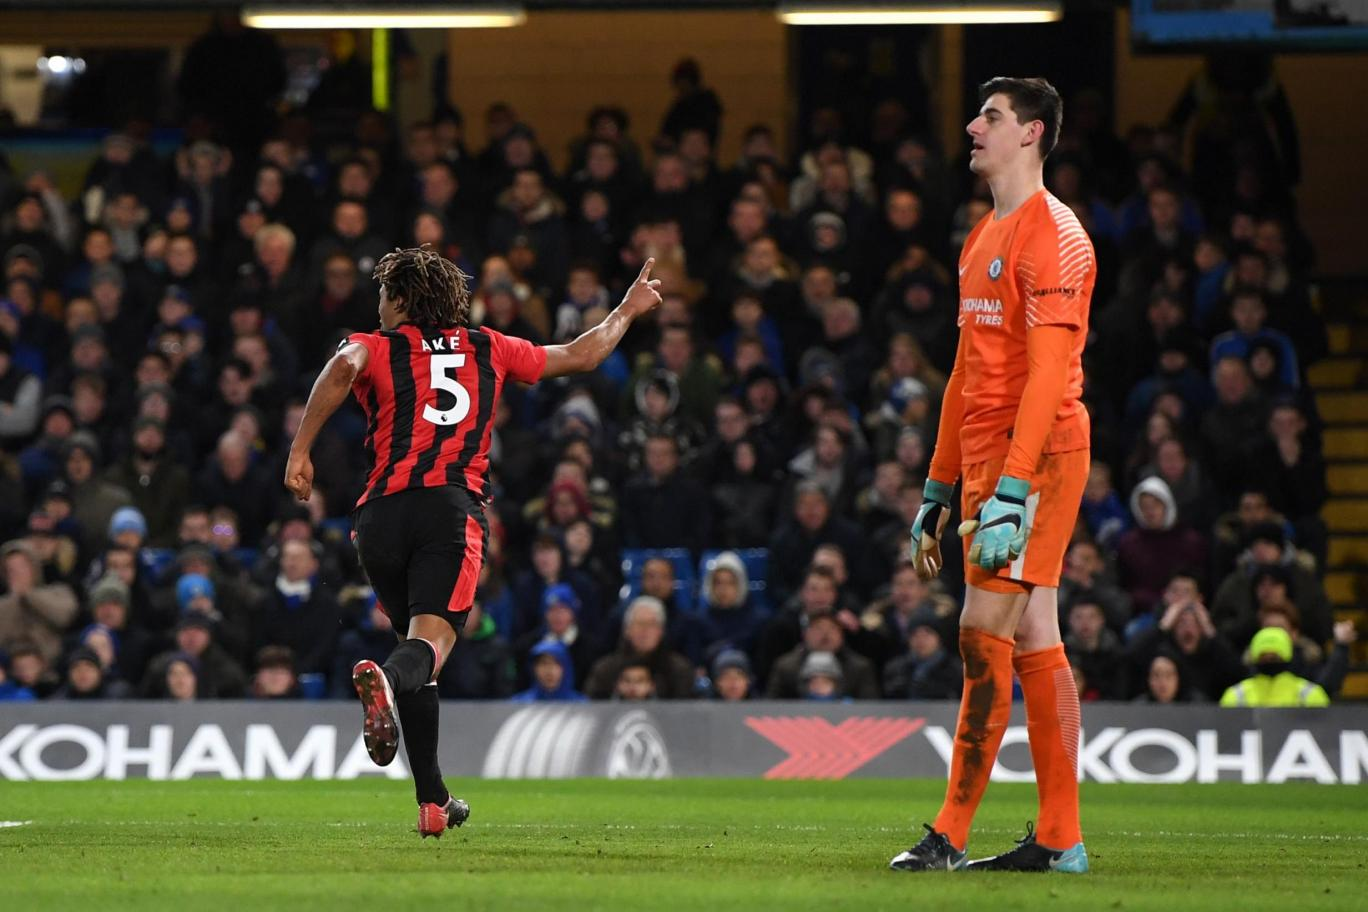 Chelsea stunned by brave Bournemouth at Stamford Bridge